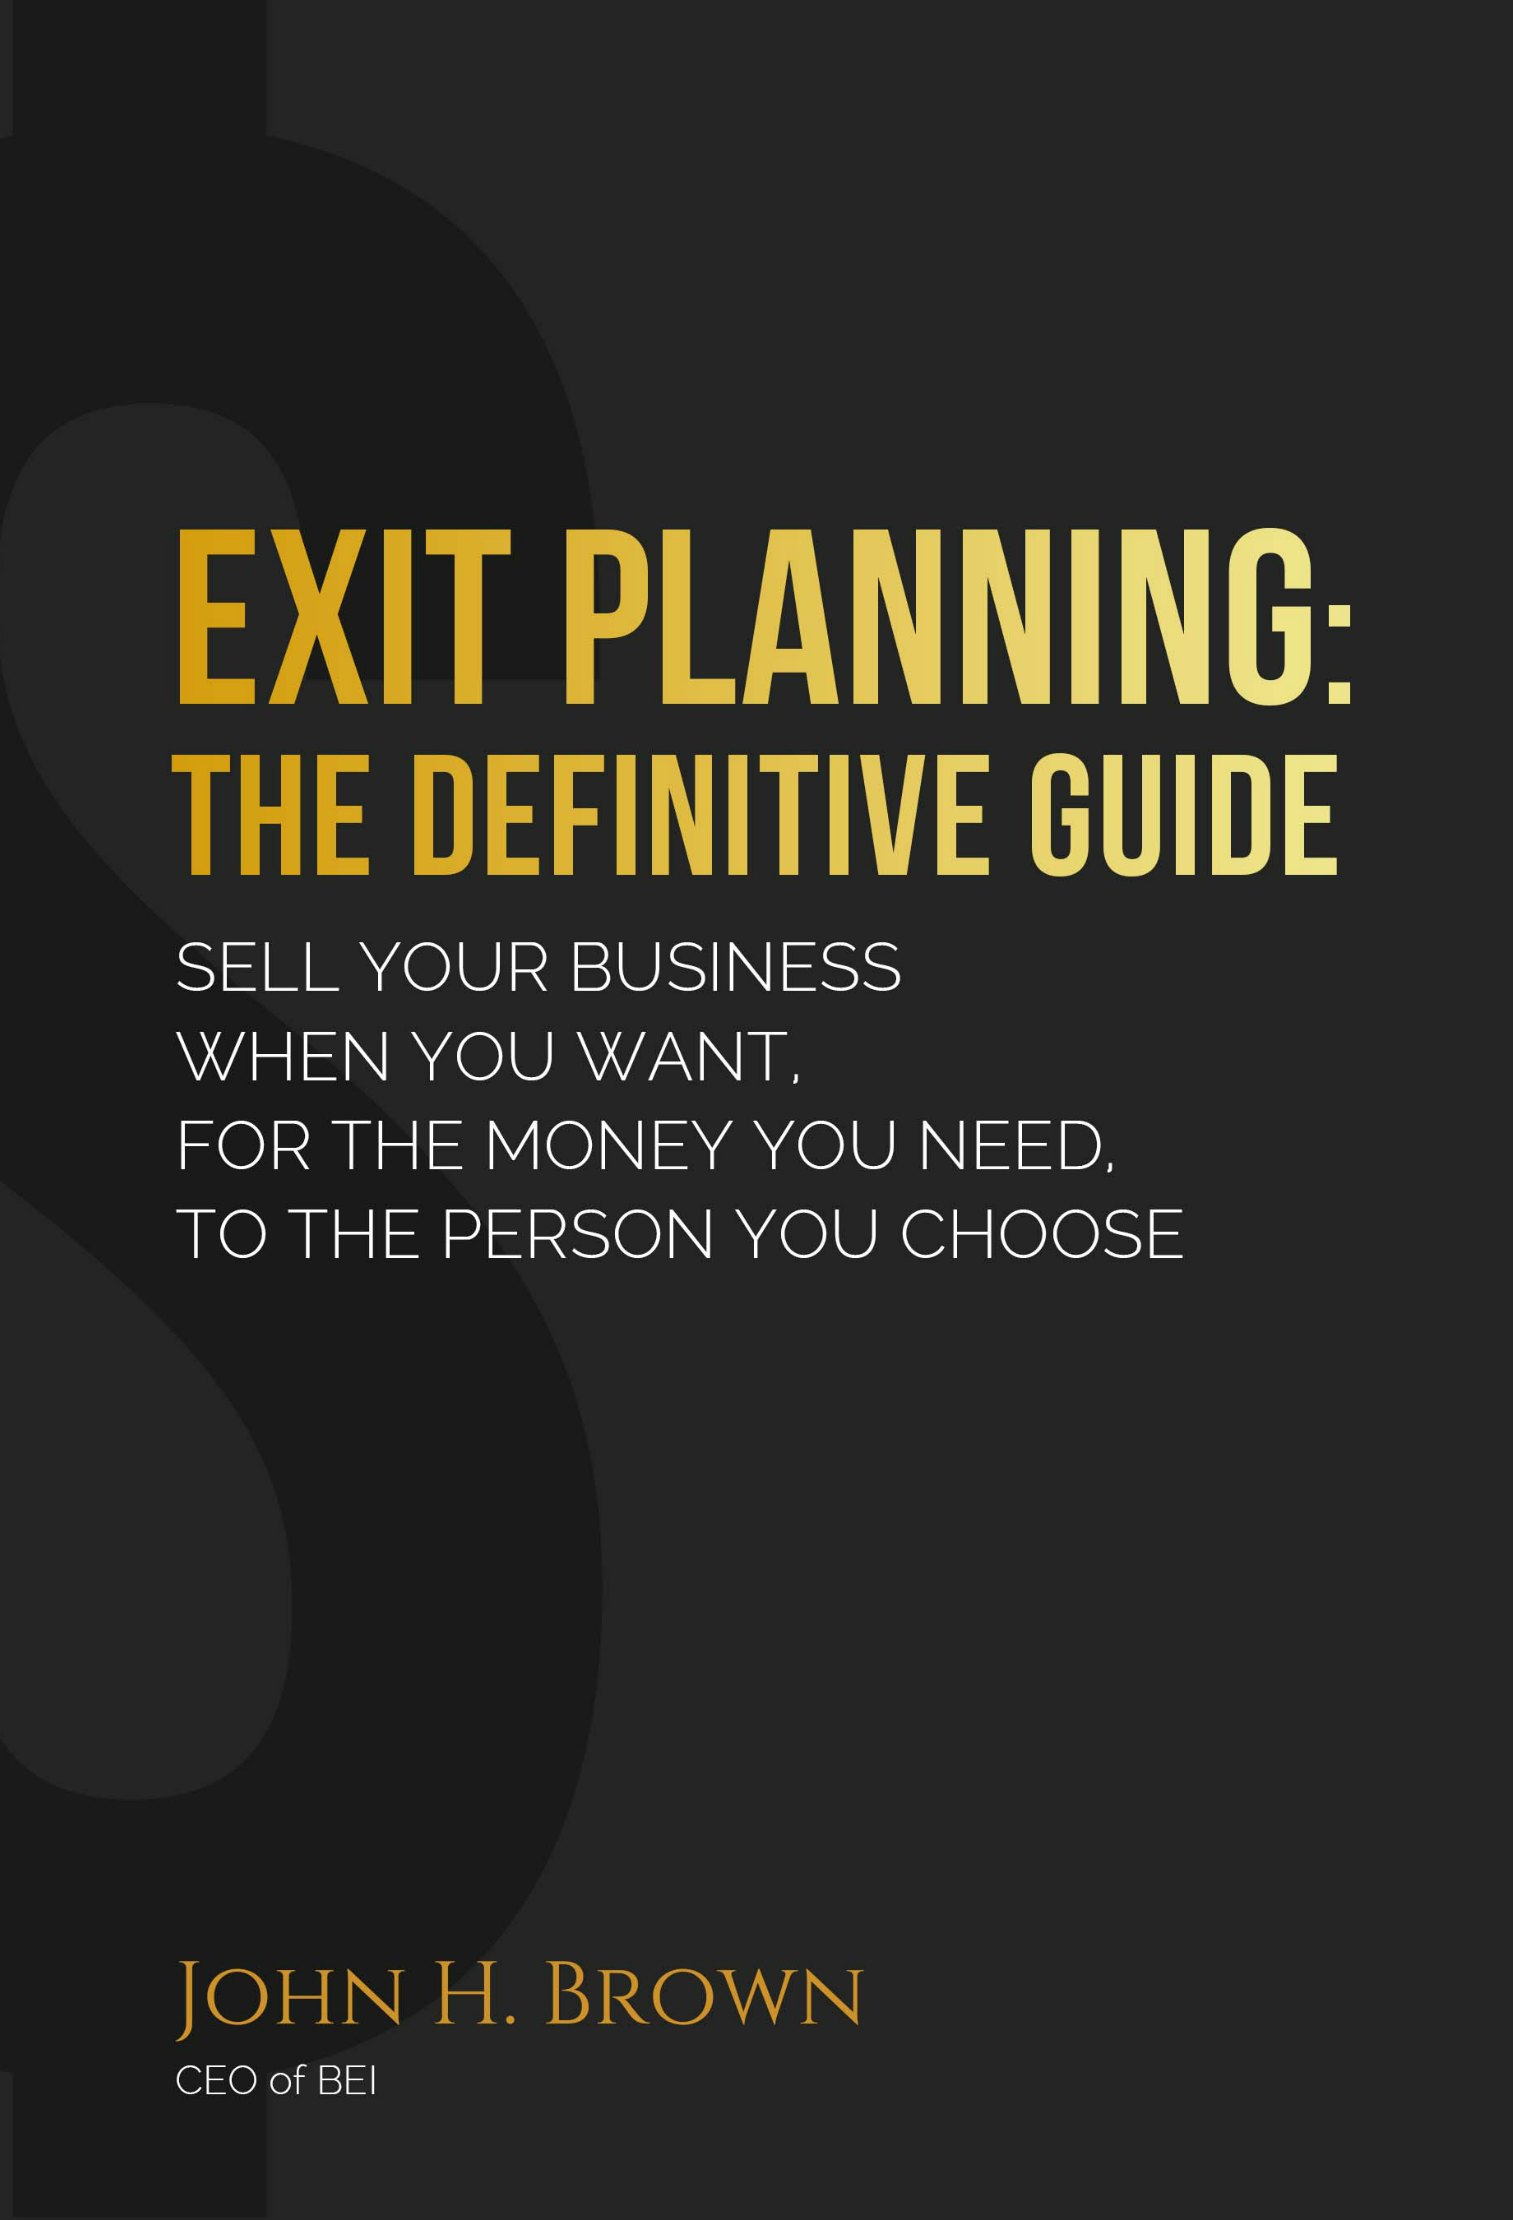 Exit Planning The Definitive Guide